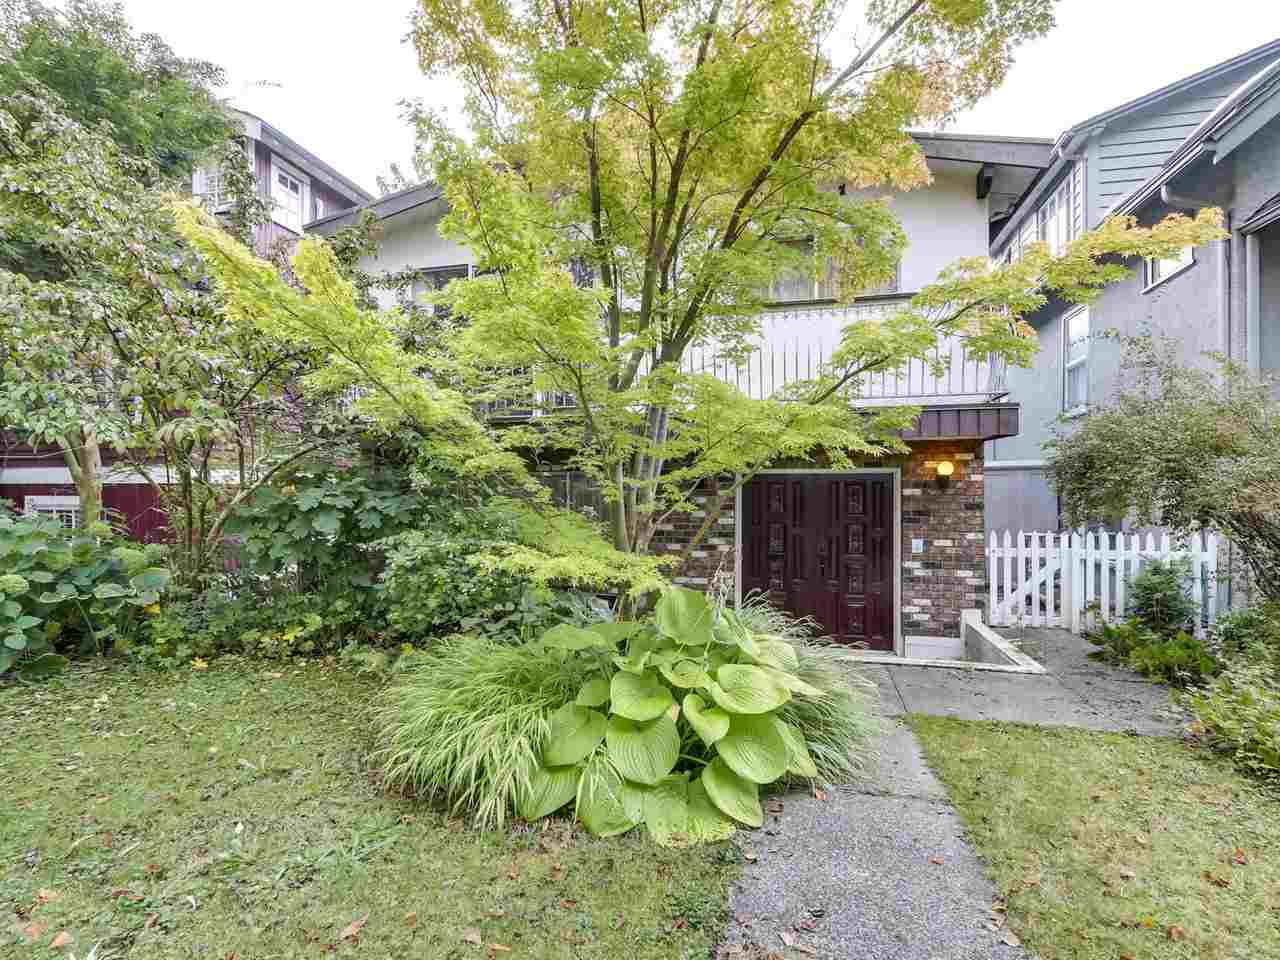 4372 W 13TH AVENUE - Point Grey House/Single Family for sale, 4 Bedrooms (R2508858) - #1